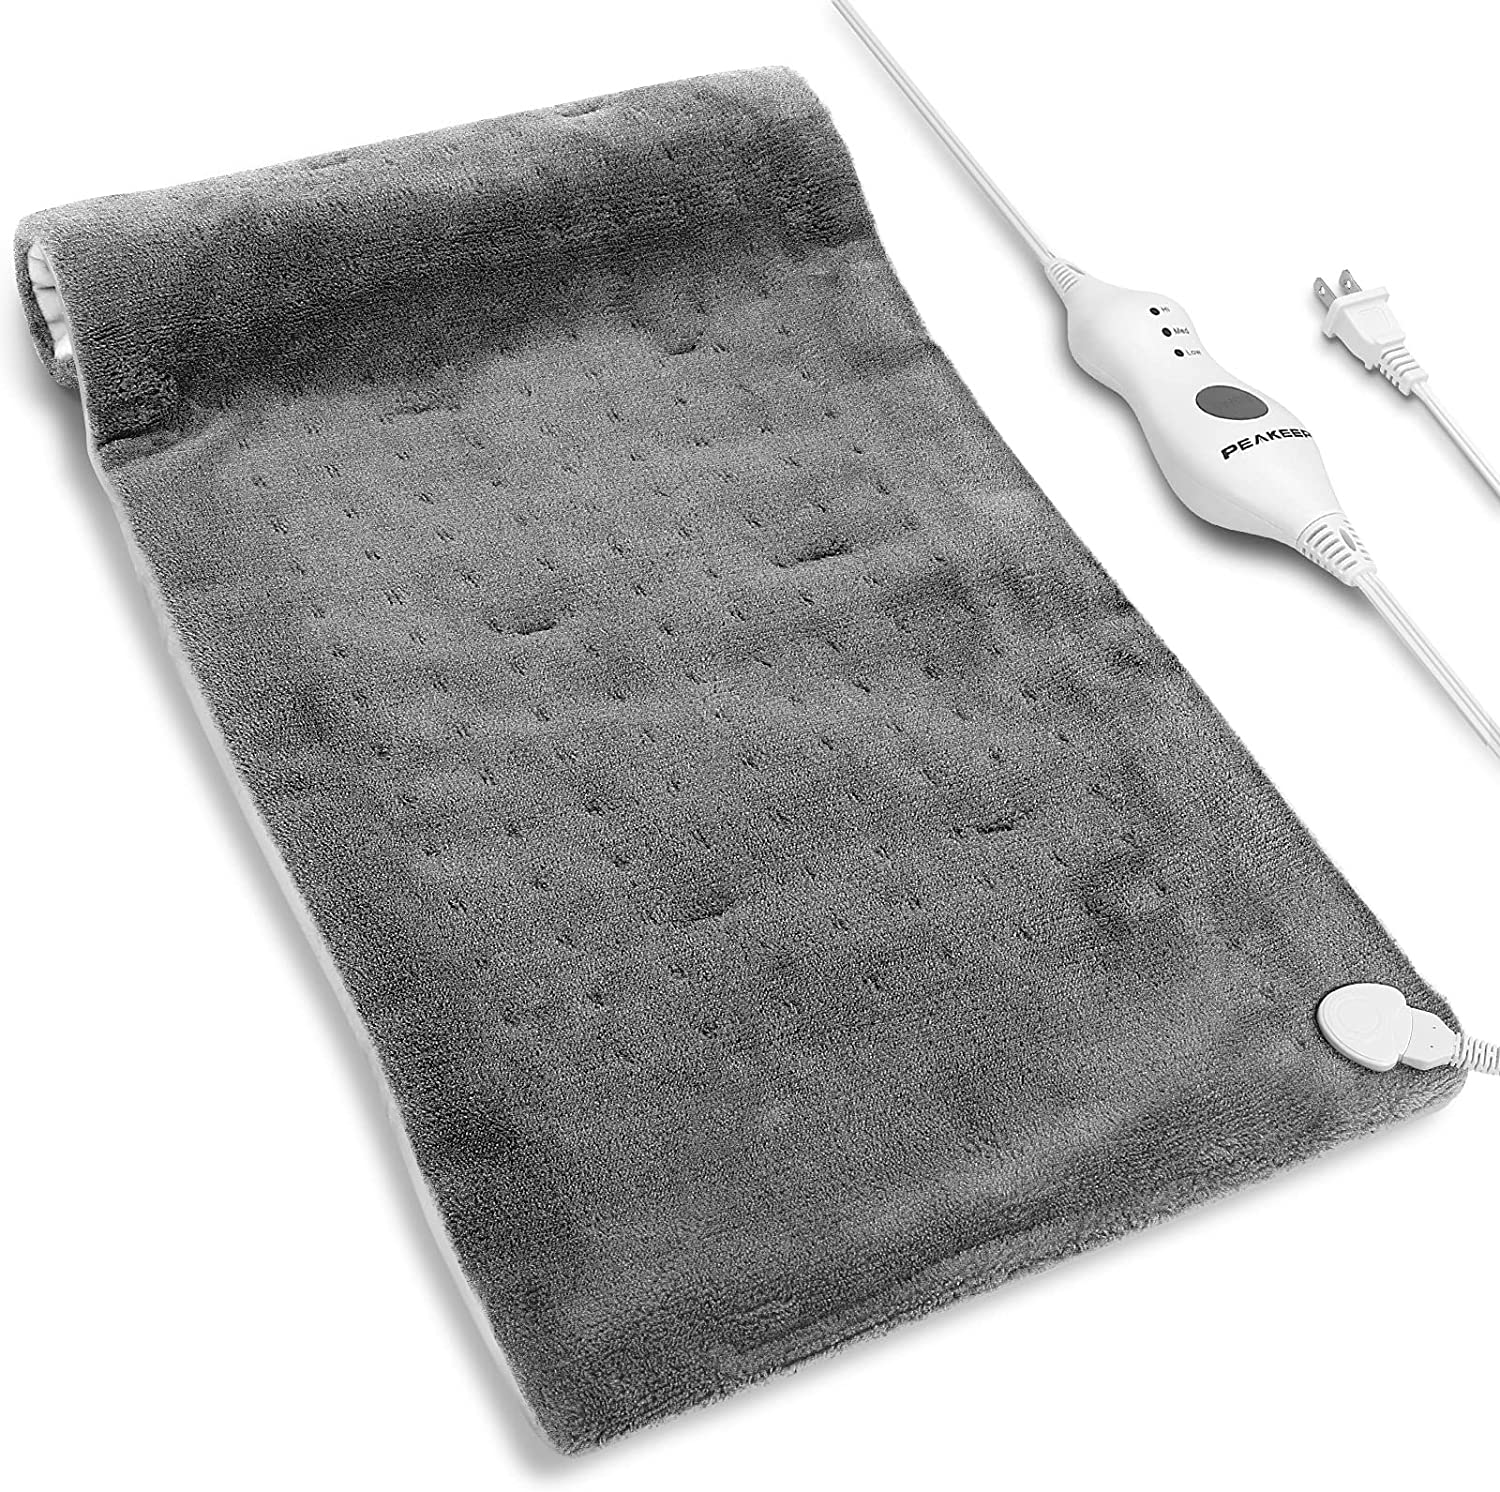 Heating Pad for Back Pain Relief Cramps - 12